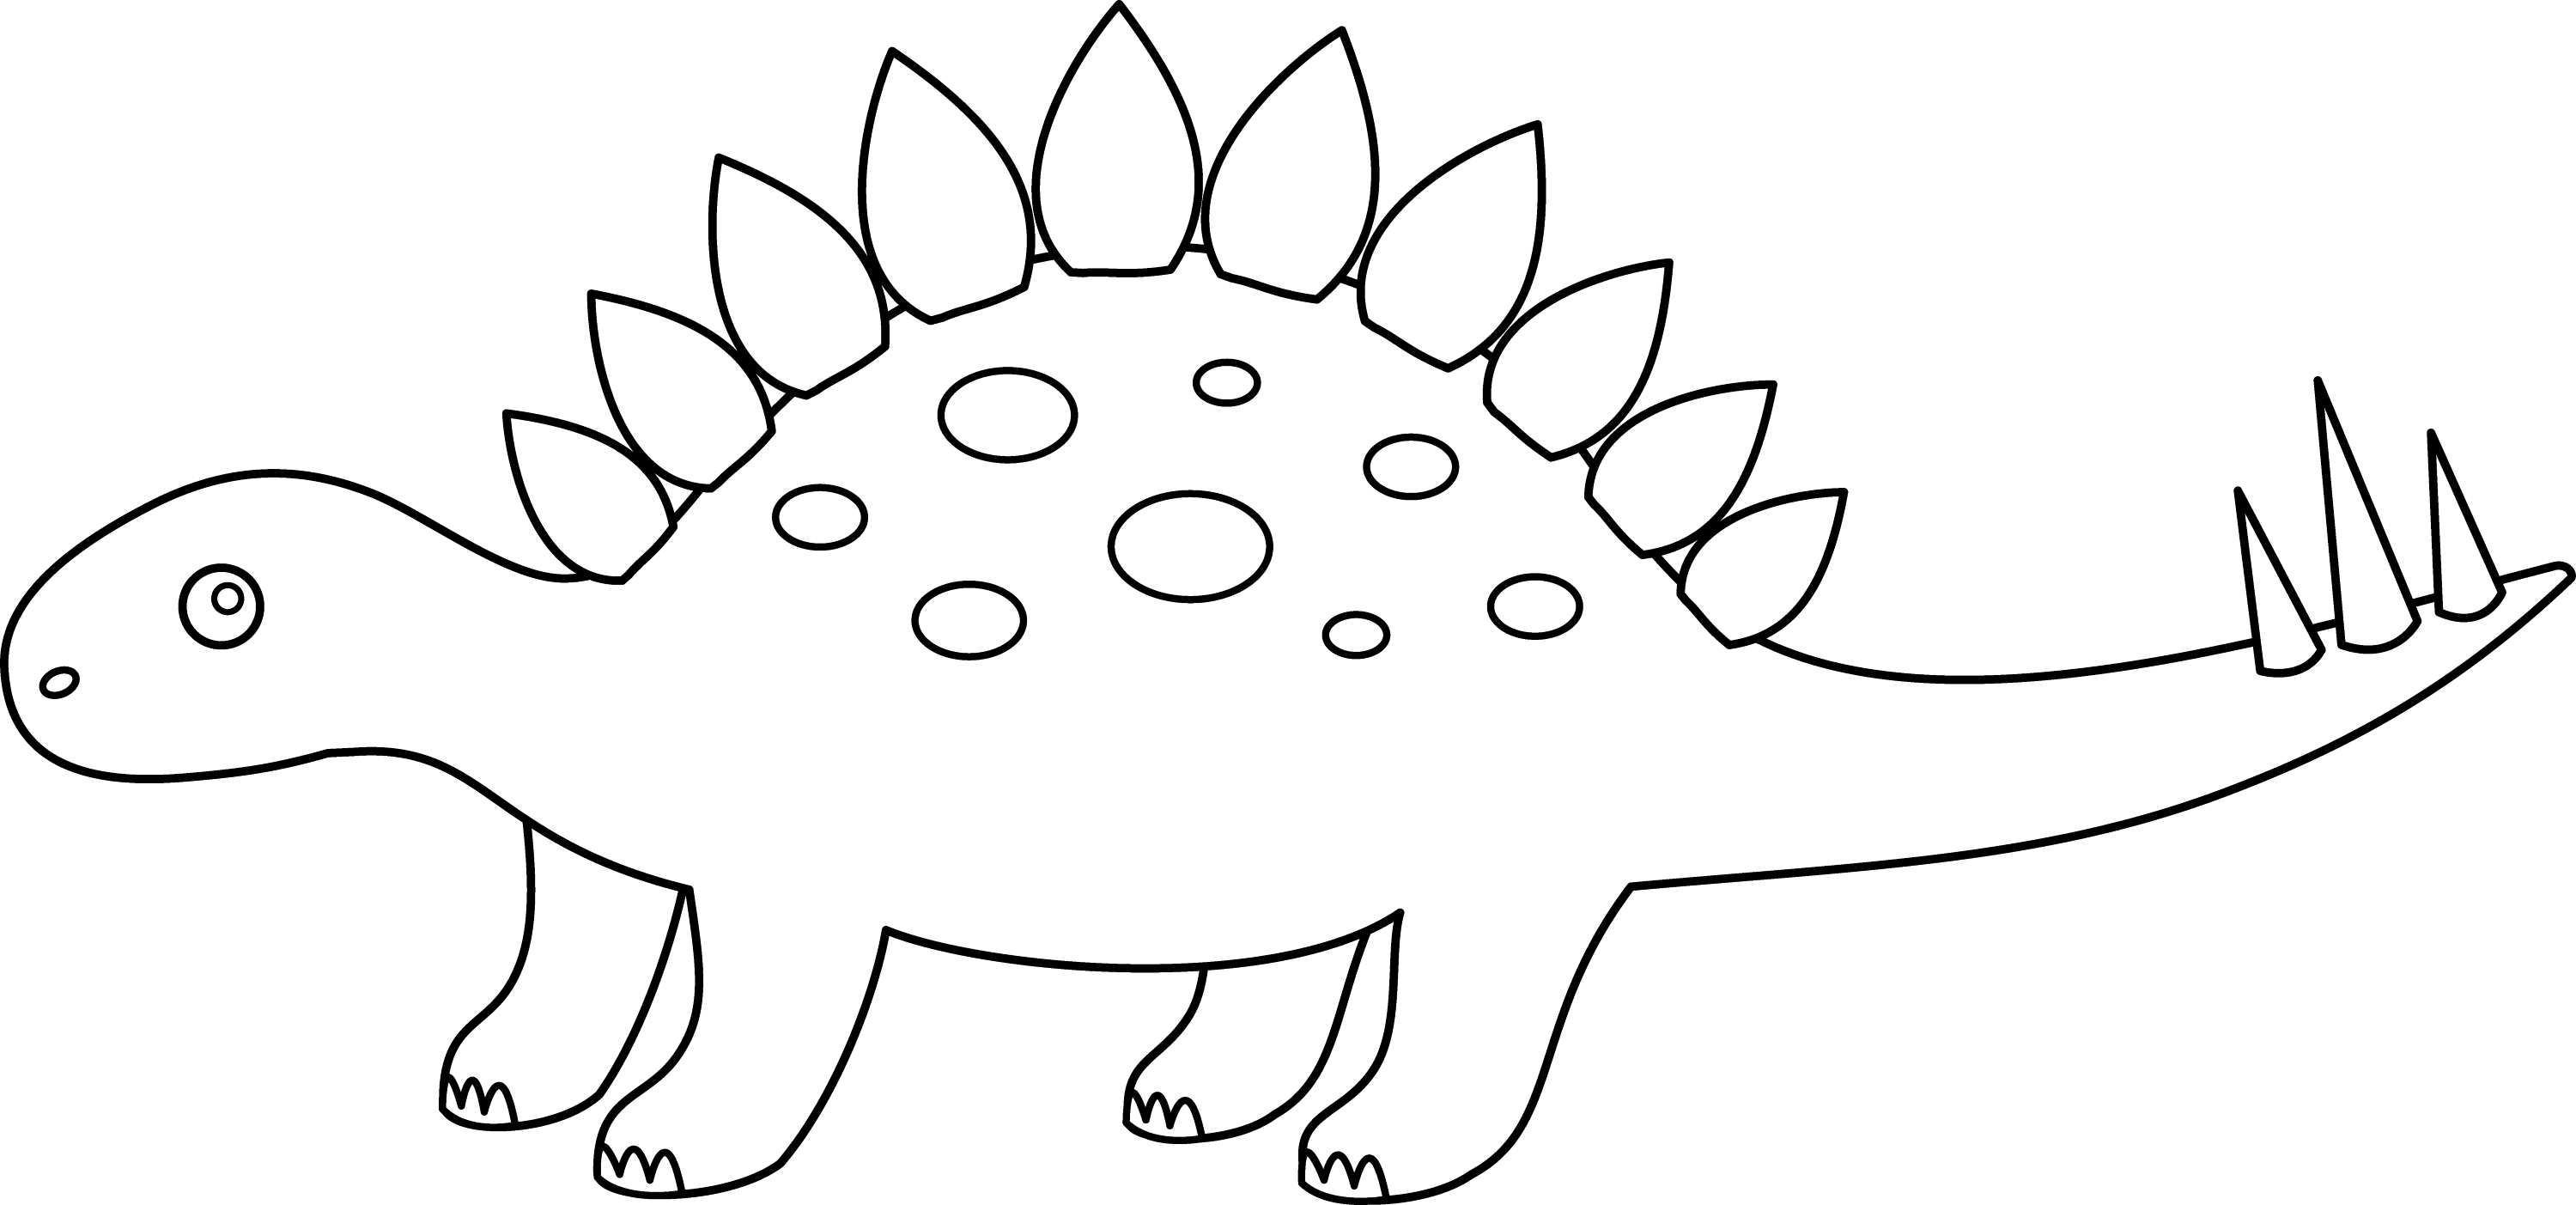 stegosaurus pictures to color stegosaurus coloring pages coloring pages to download pictures stegosaurus to color